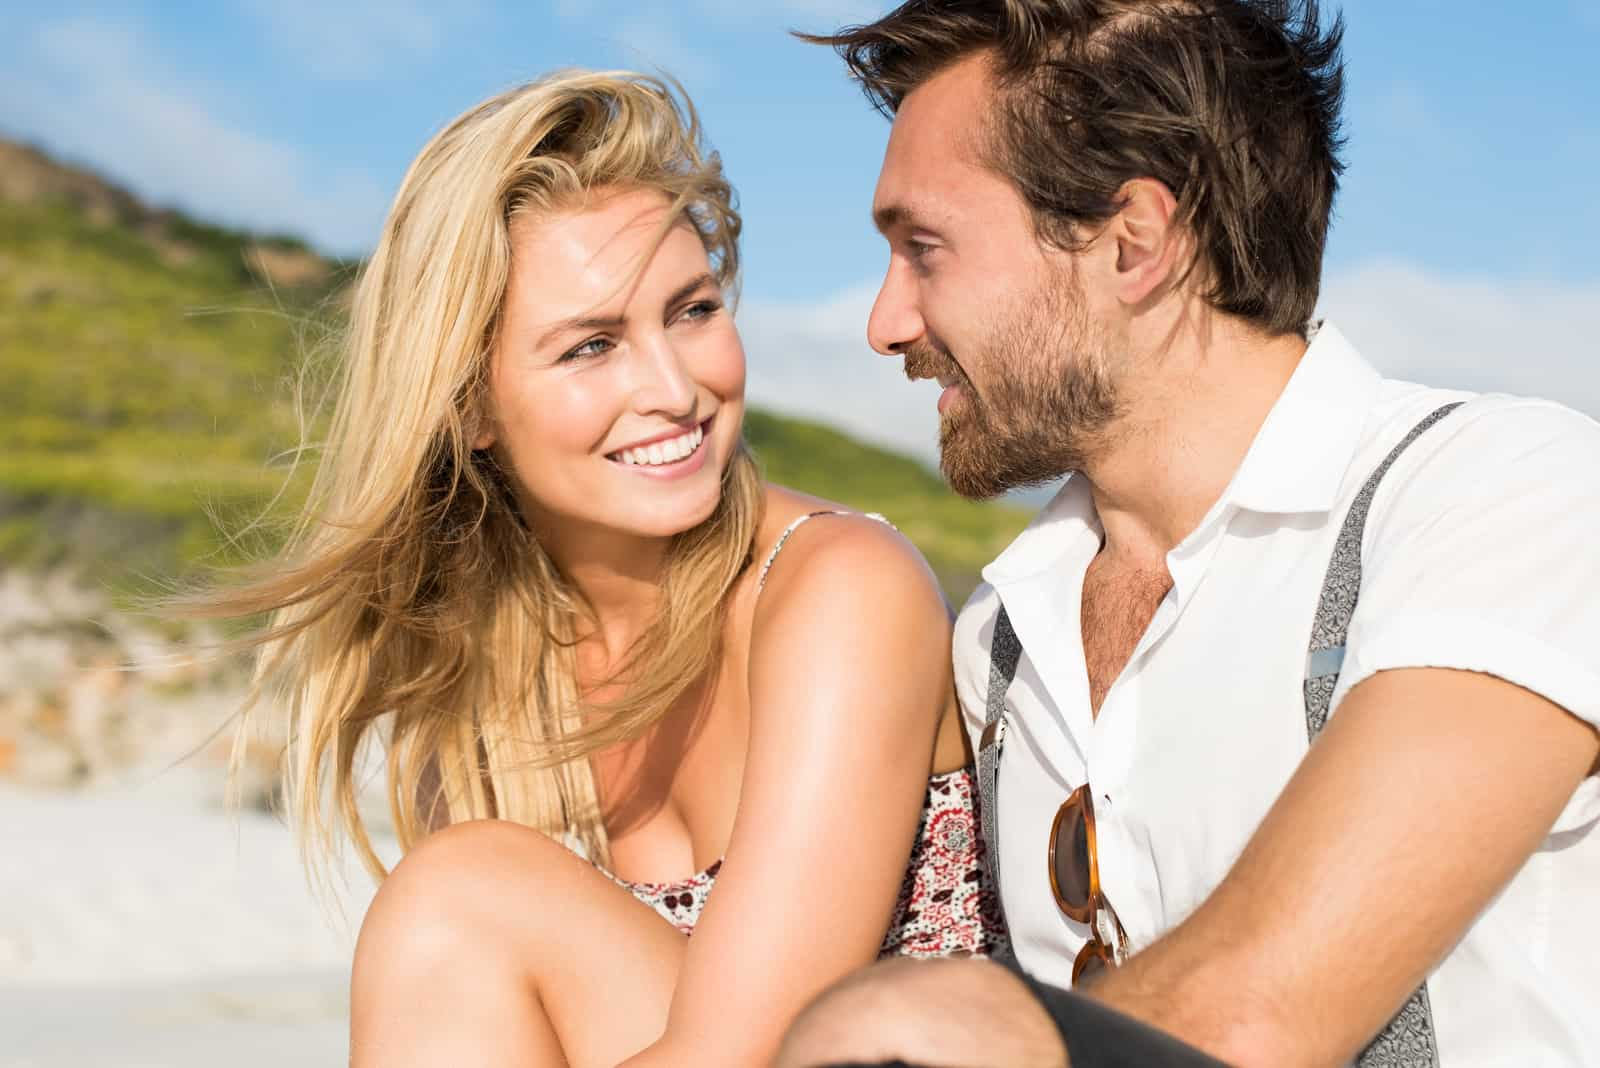 a smiling man and woman sit and talk